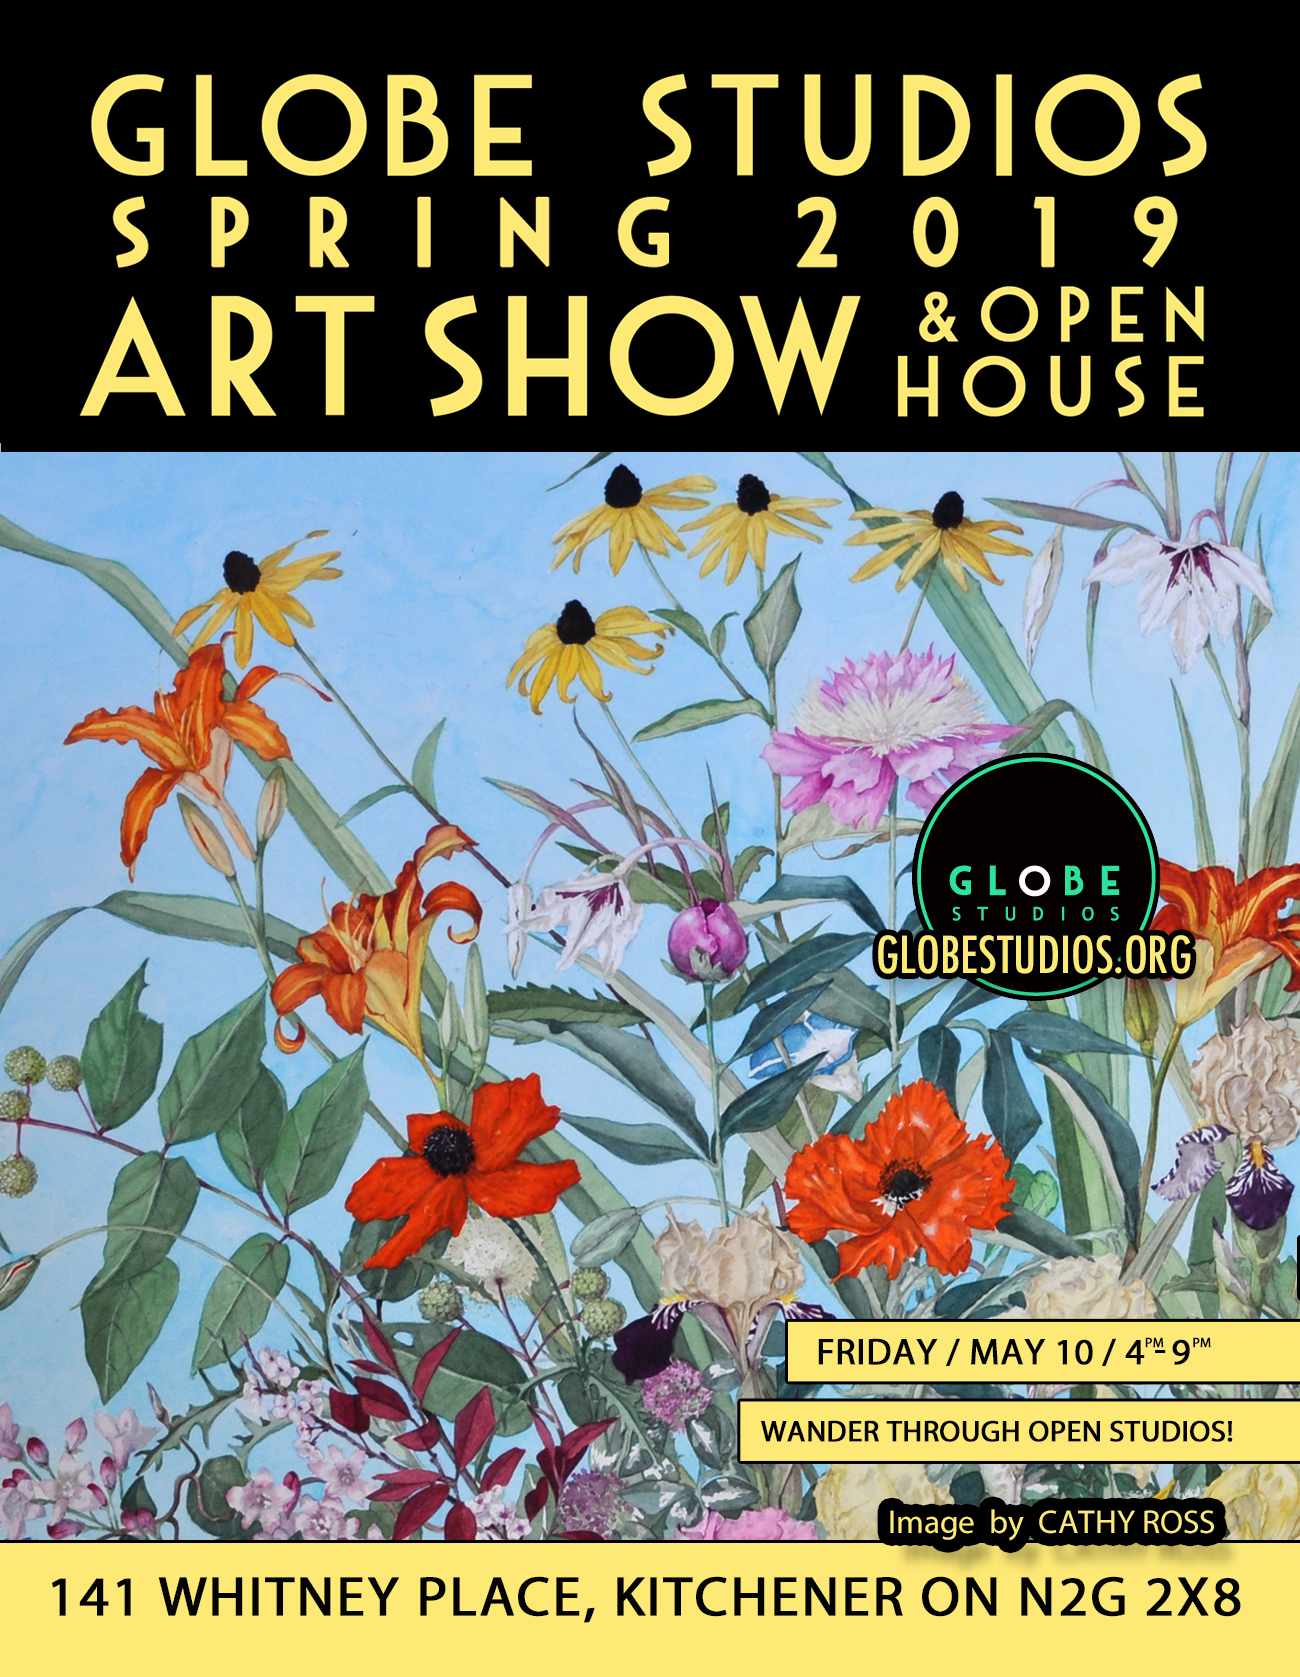 Globe Studios Spring 2019 Art Show and Open House - Friday, May 10th 4-9 p.m. 141 Whitney Place, Kitchener ON  N2G2X8